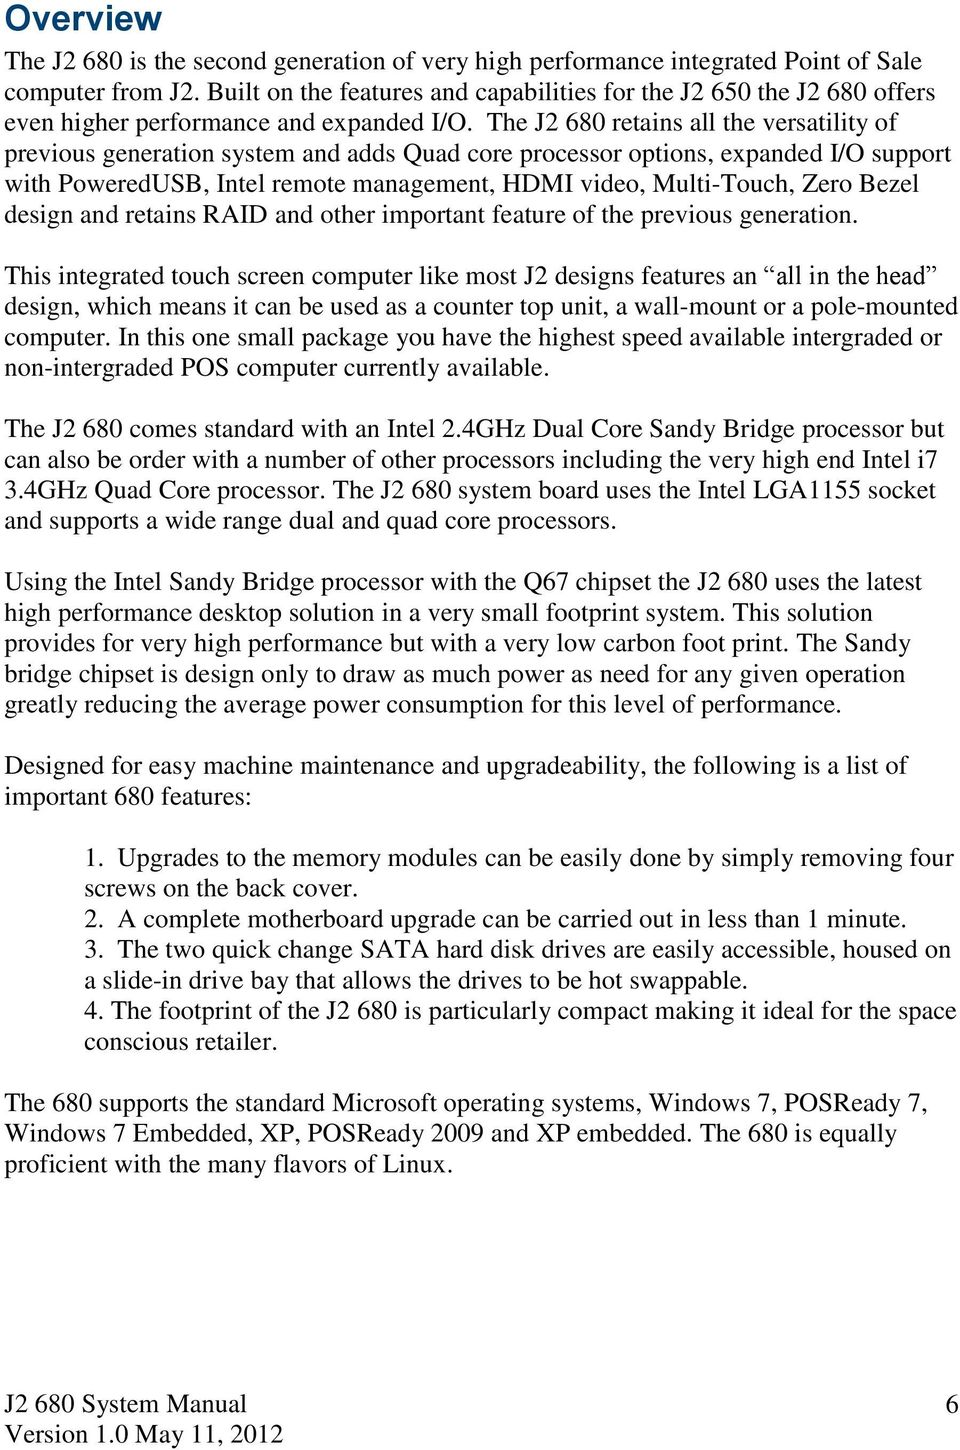 J2 680 Integrated Touchscreen Computer  System Manual - PDF